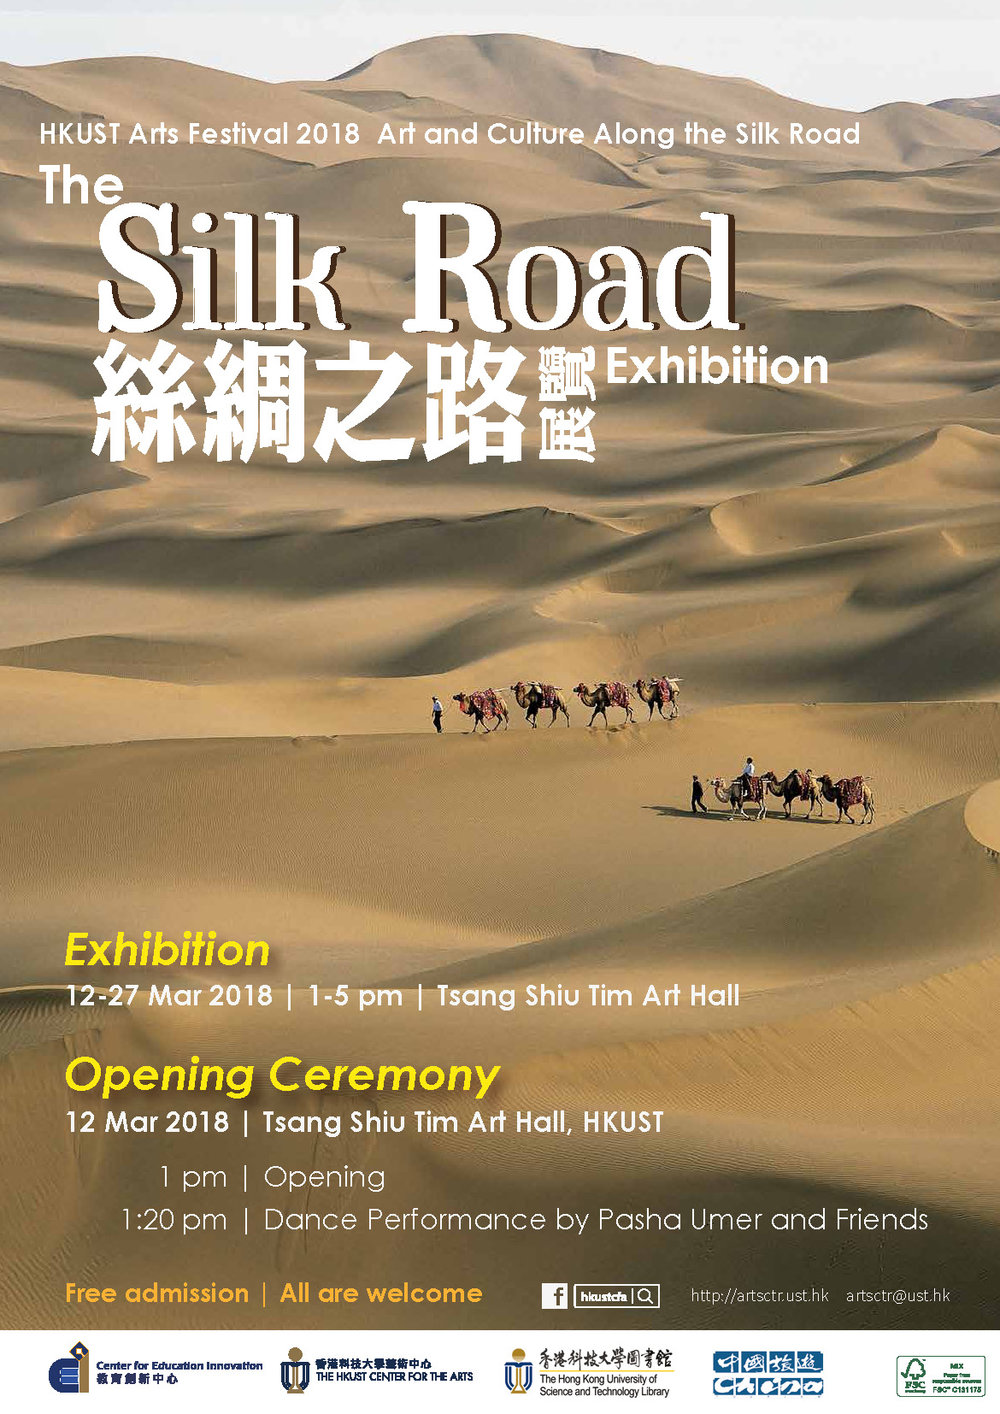 The Silk Road Exhibition 絲綢之路展覽  Mar 12-27, 2018